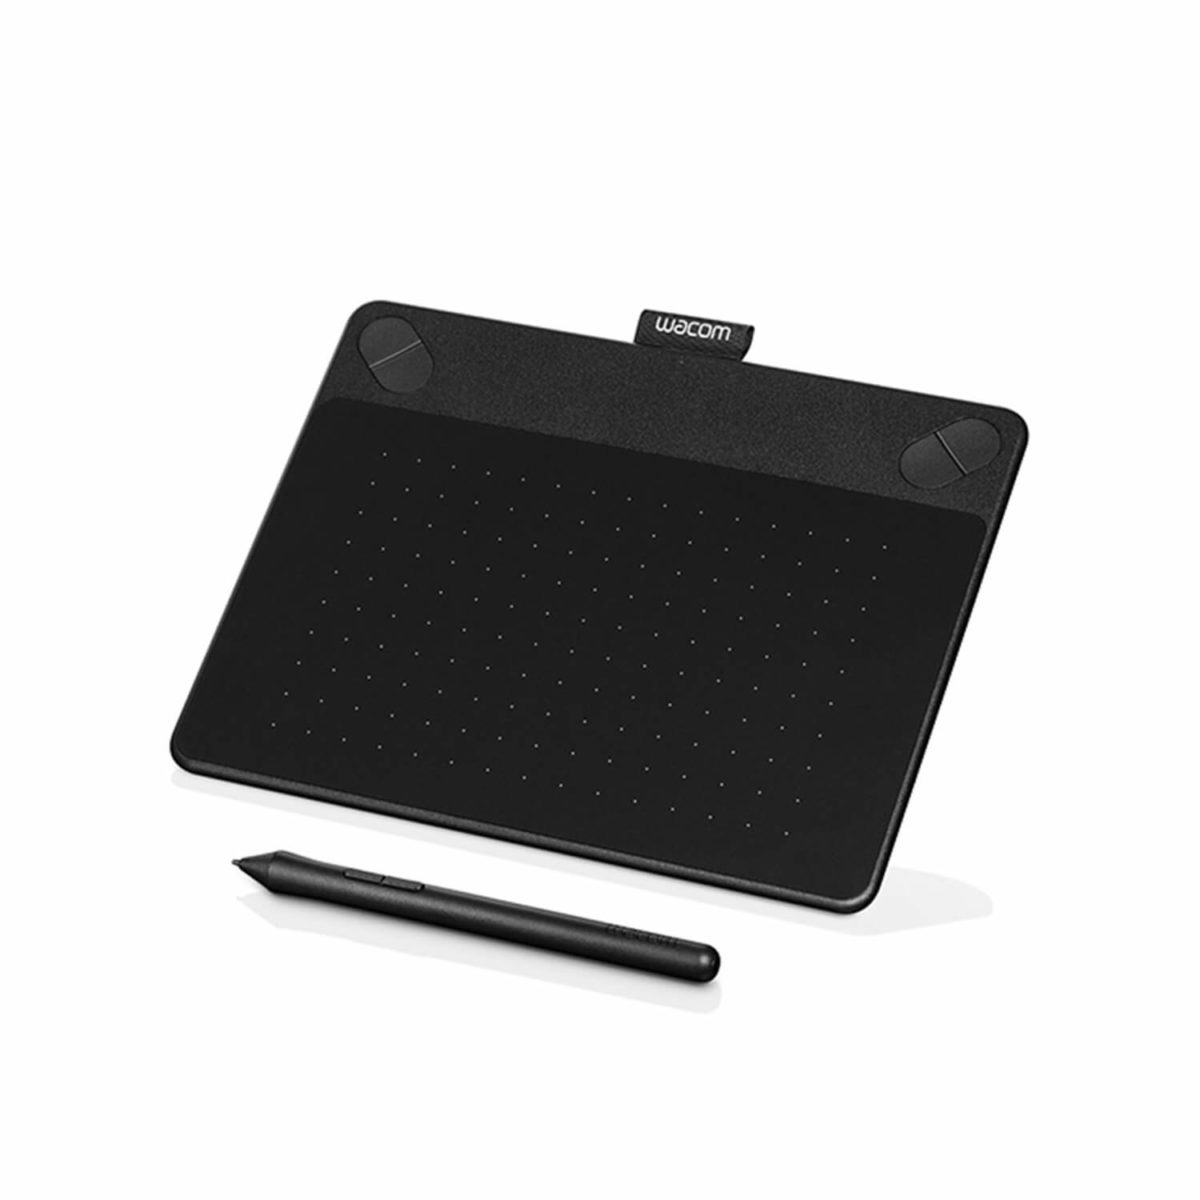 Wacom Intuos Pen and Touch Best Value Drawing Tablet